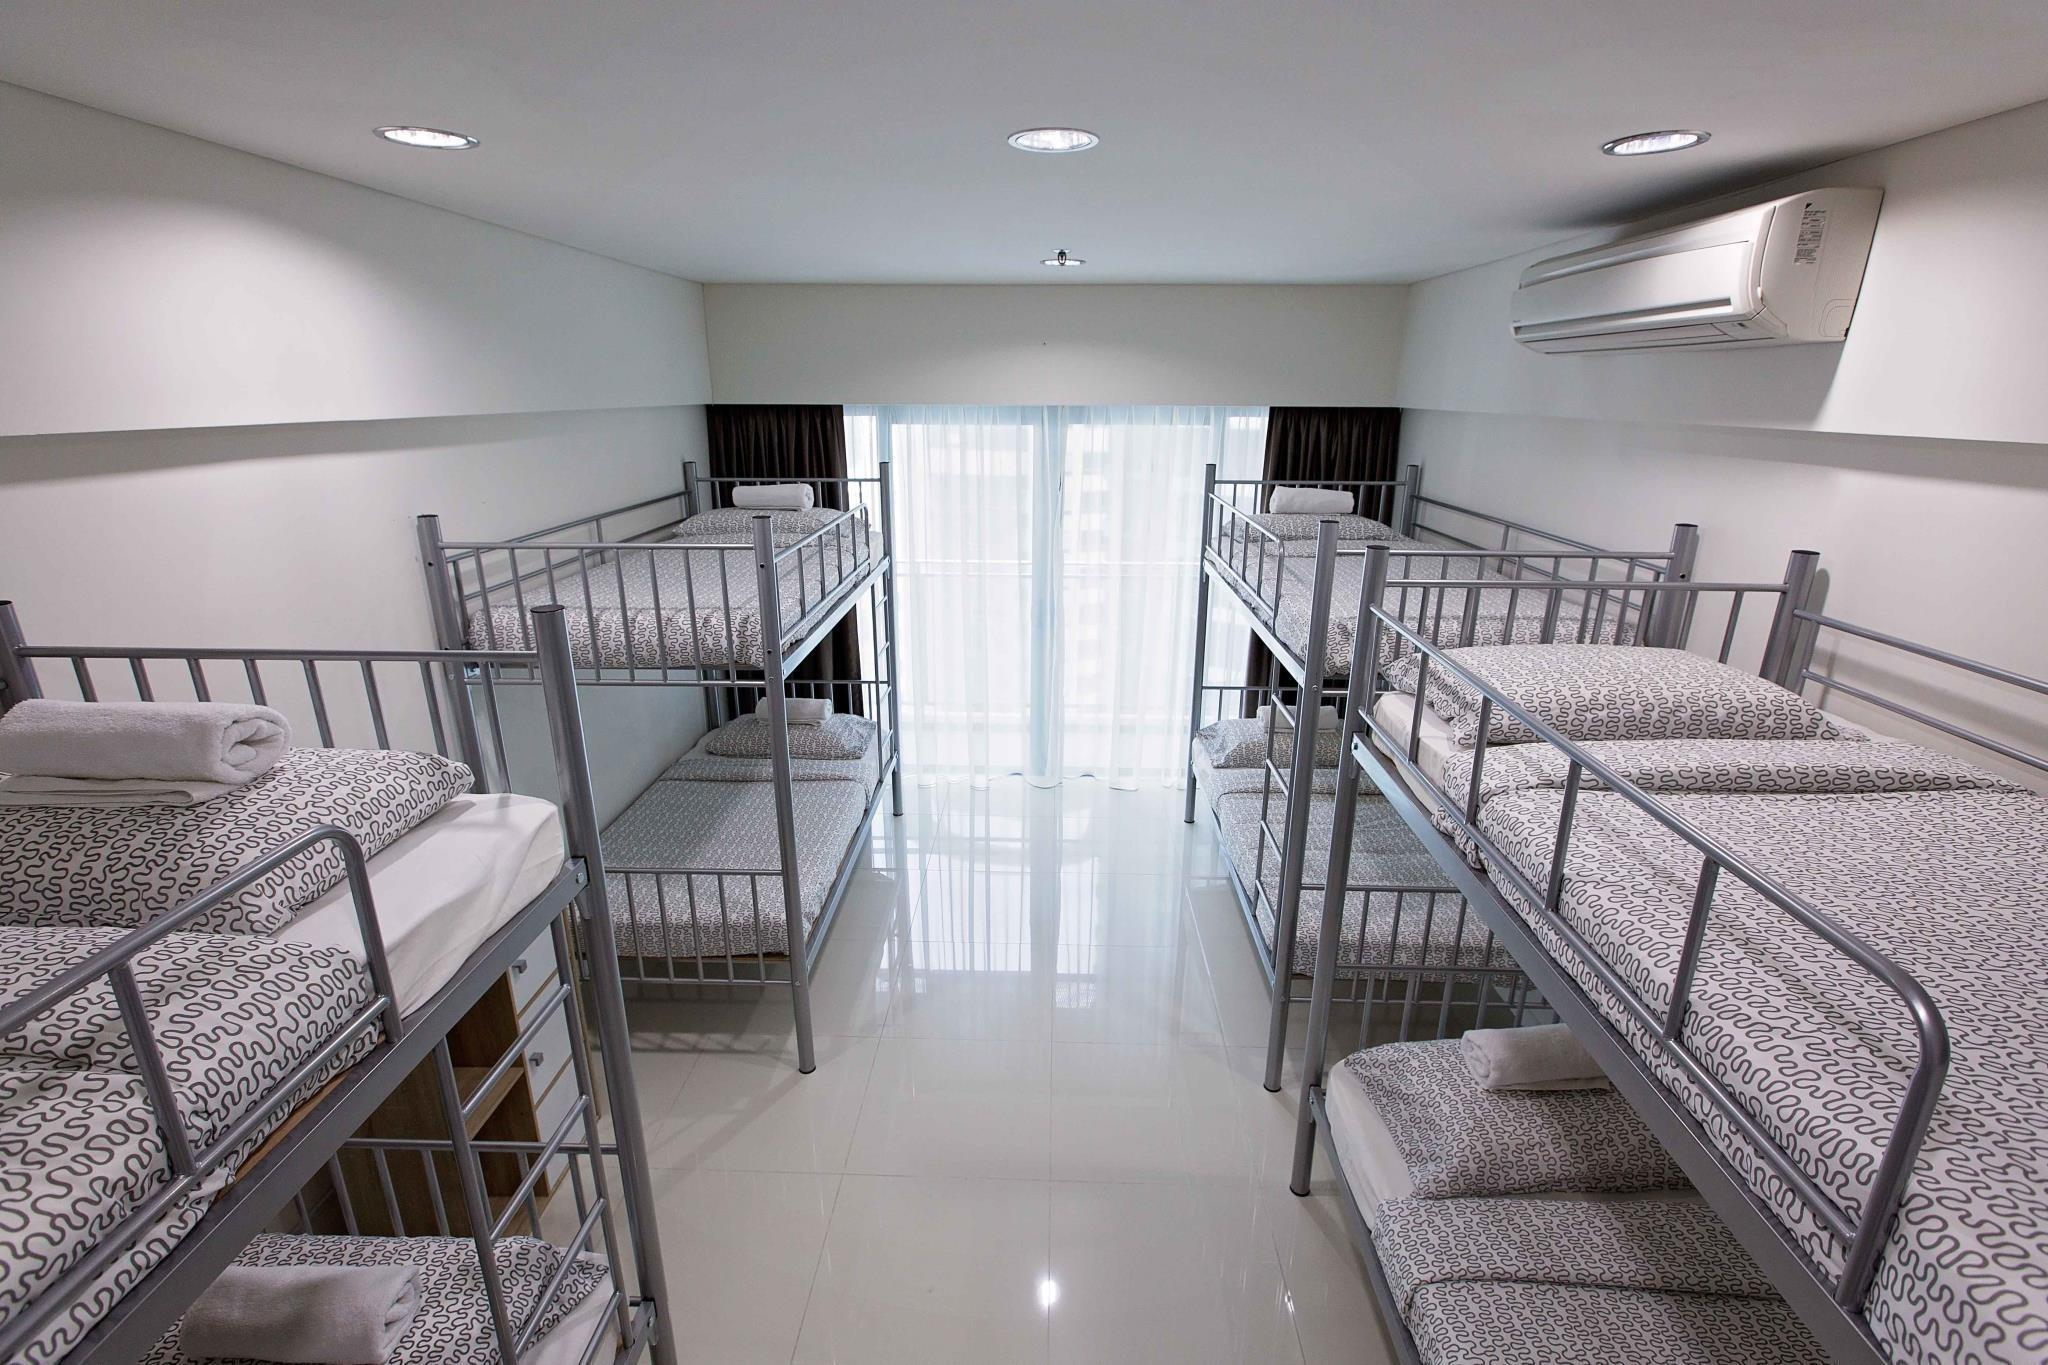 2 People in 8-Bed Dormitory - Female Only